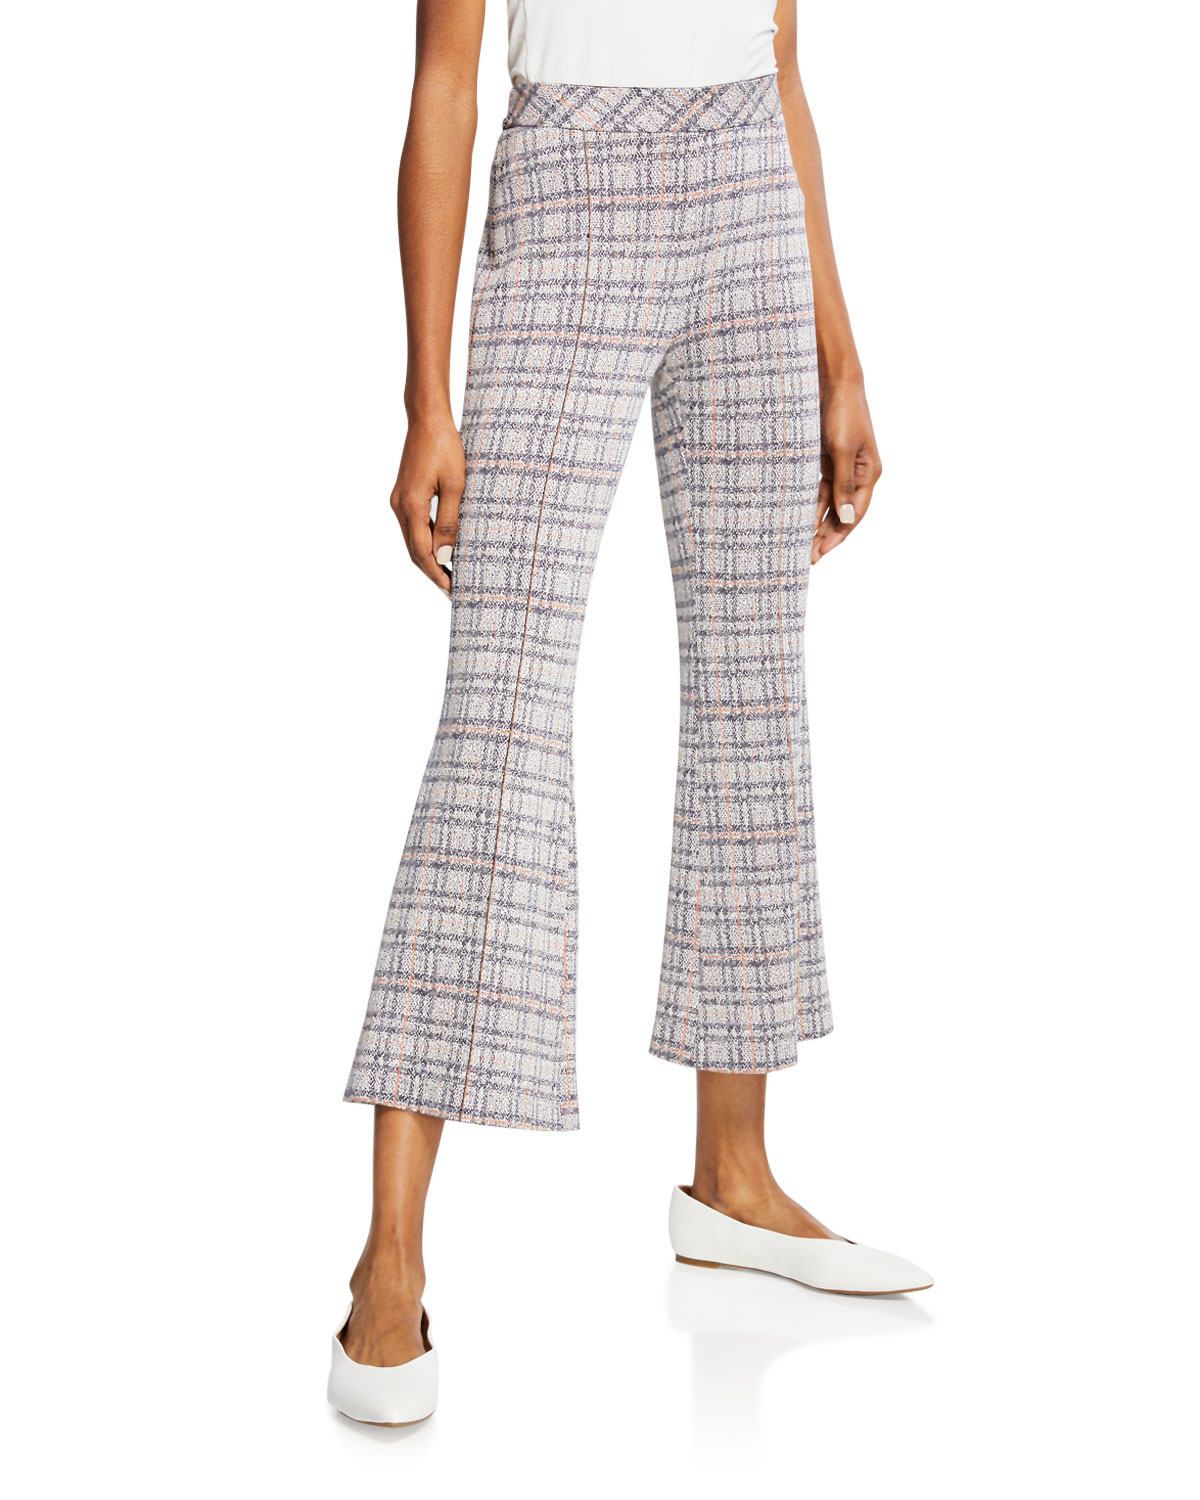 Rosetta Getty Pants PLAID JERSEY PULL ON CROPPED PANTS